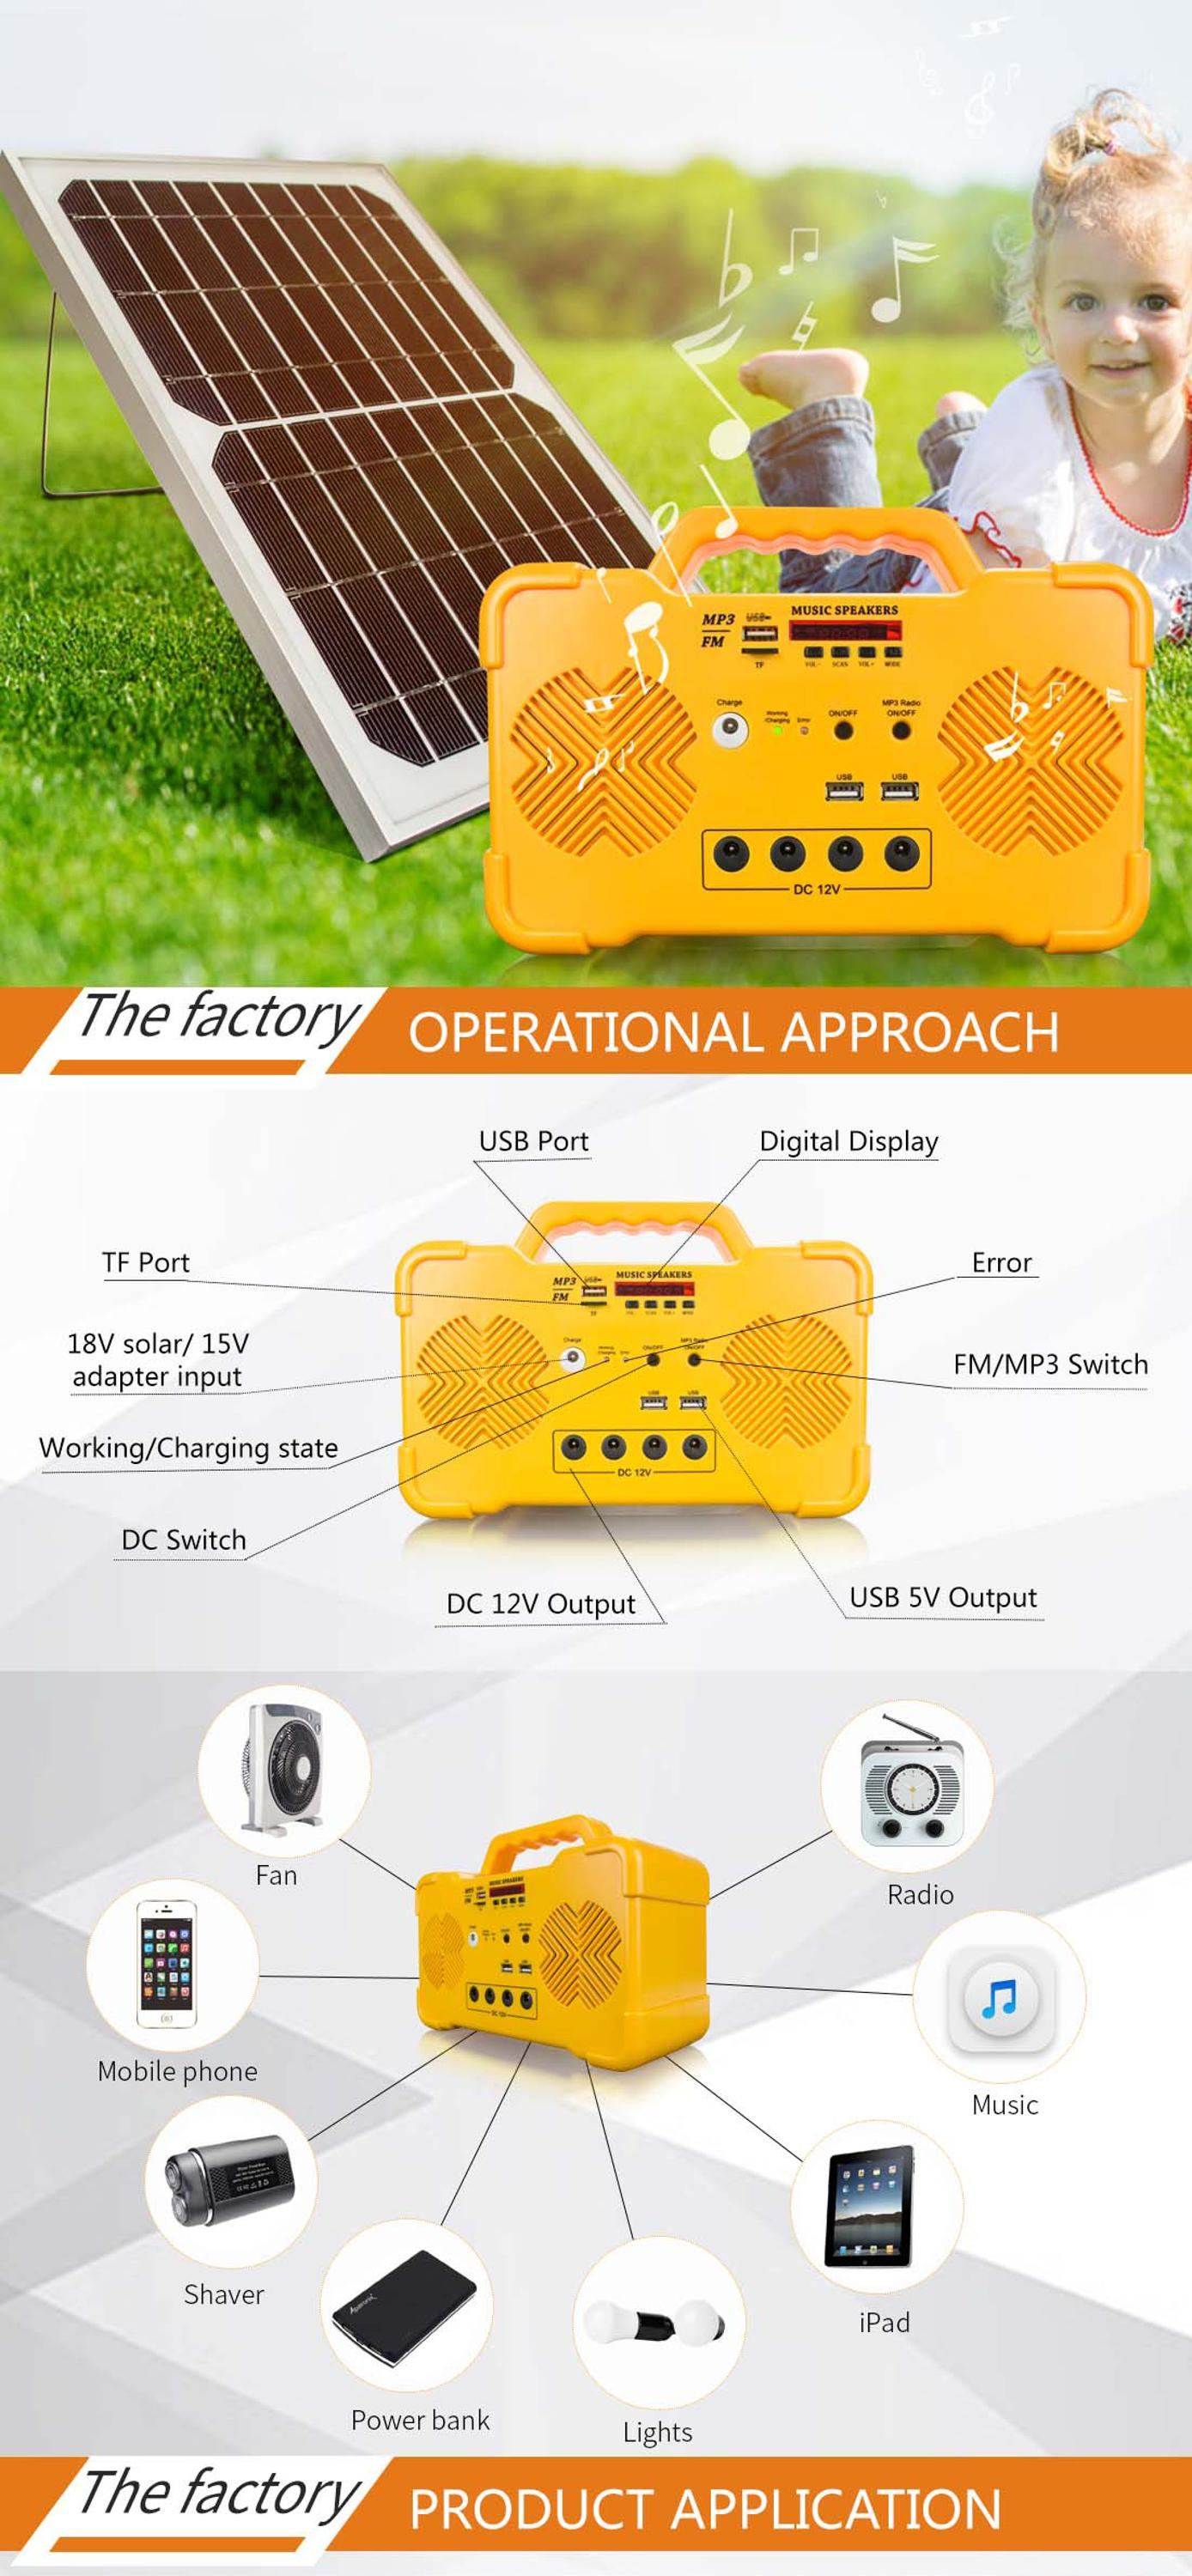 Wiring Diagram Electrical Ip65 Waterproof 5kw On Grid Solar System 12v 156156 Cell 15w Portable Power For Home Use